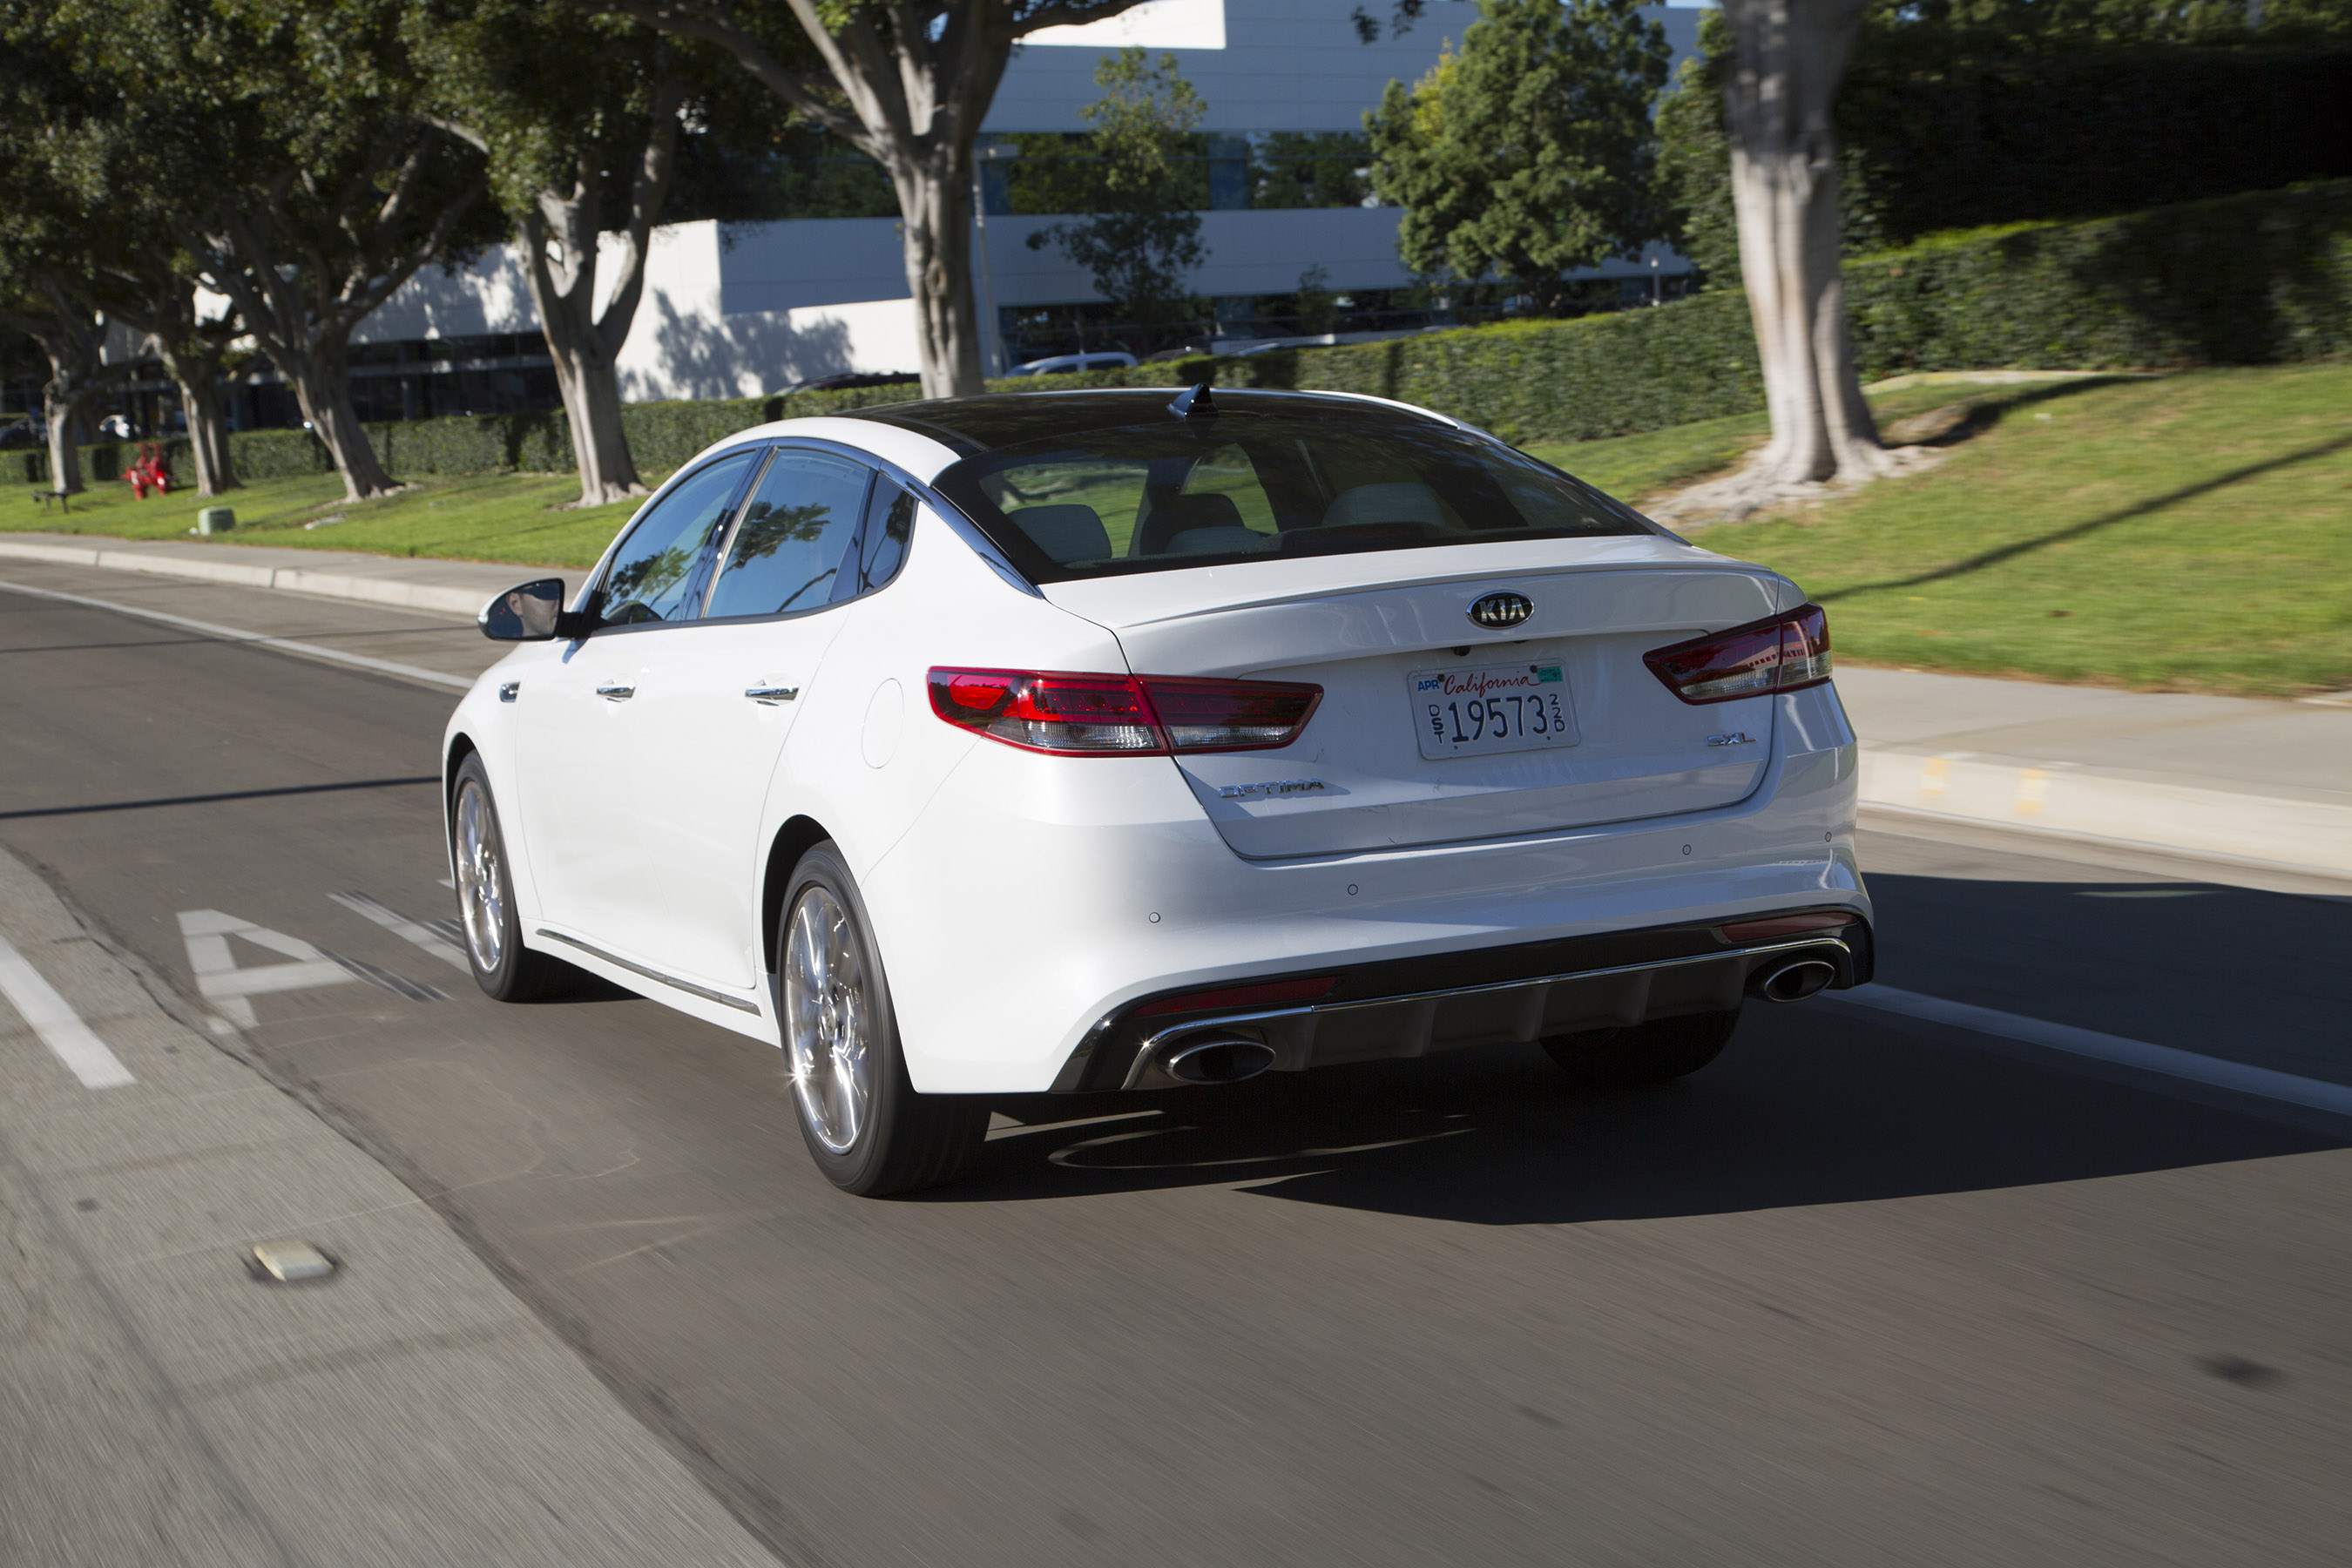 After years of winning fans with sharp style, premium features and solid value, a full redesign for 2016 has catapulted the Optima past some great vehicles for this year's Mid-Size Car Best Buy Award.